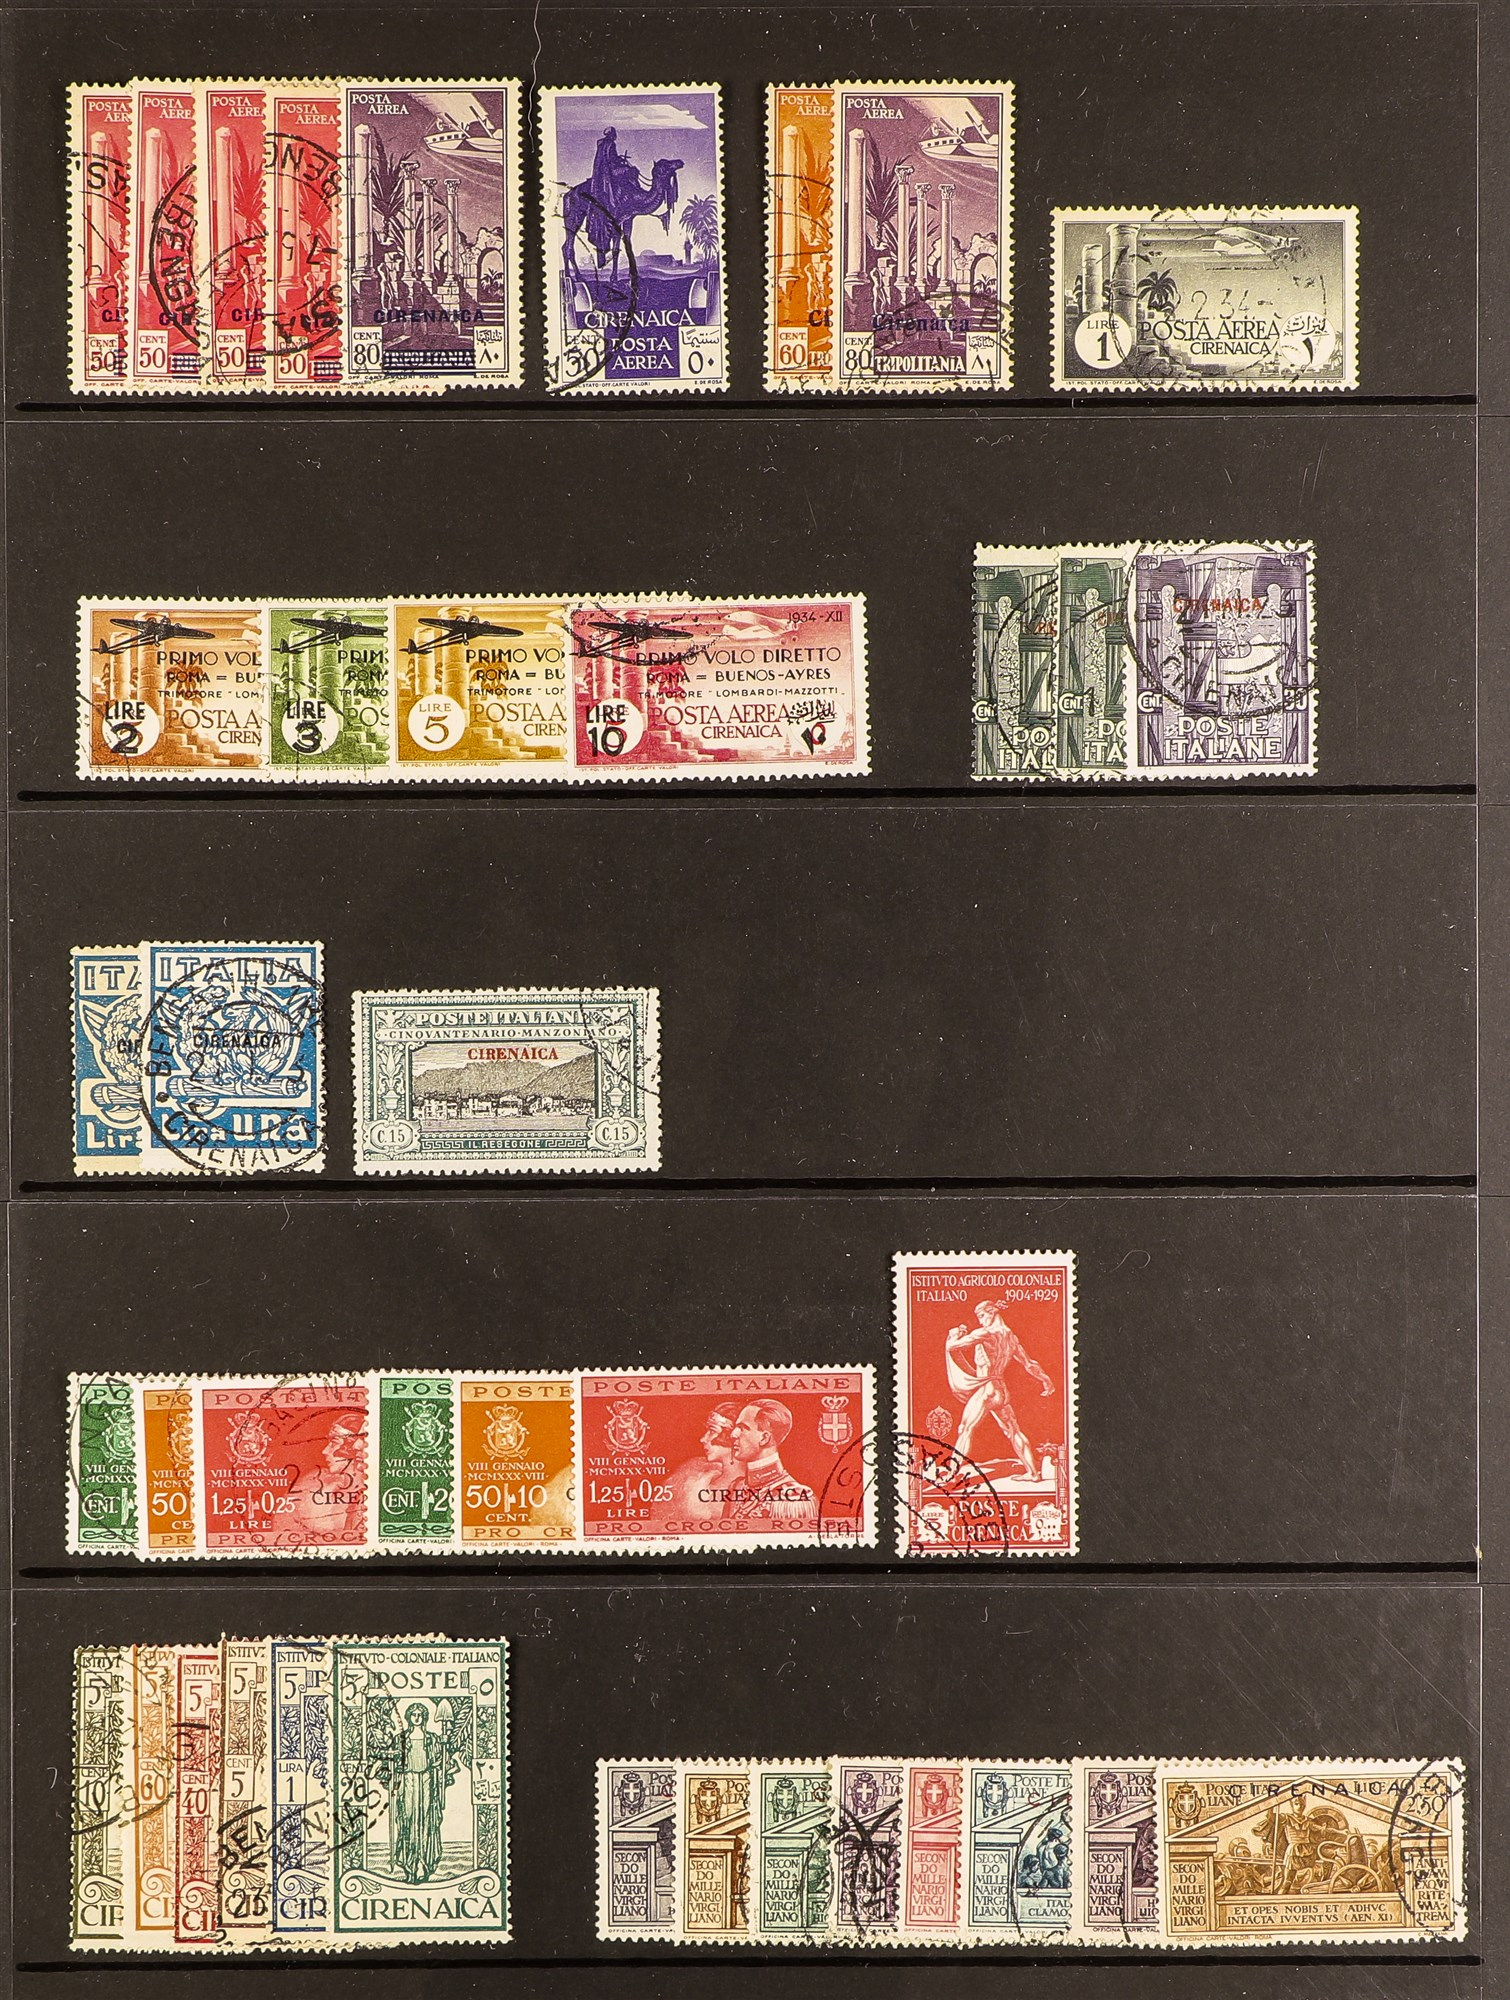 ITALIAN COLONIES CIRENAICA 111923-34 Fine used collection with complete sets and better items - Image 2 of 2